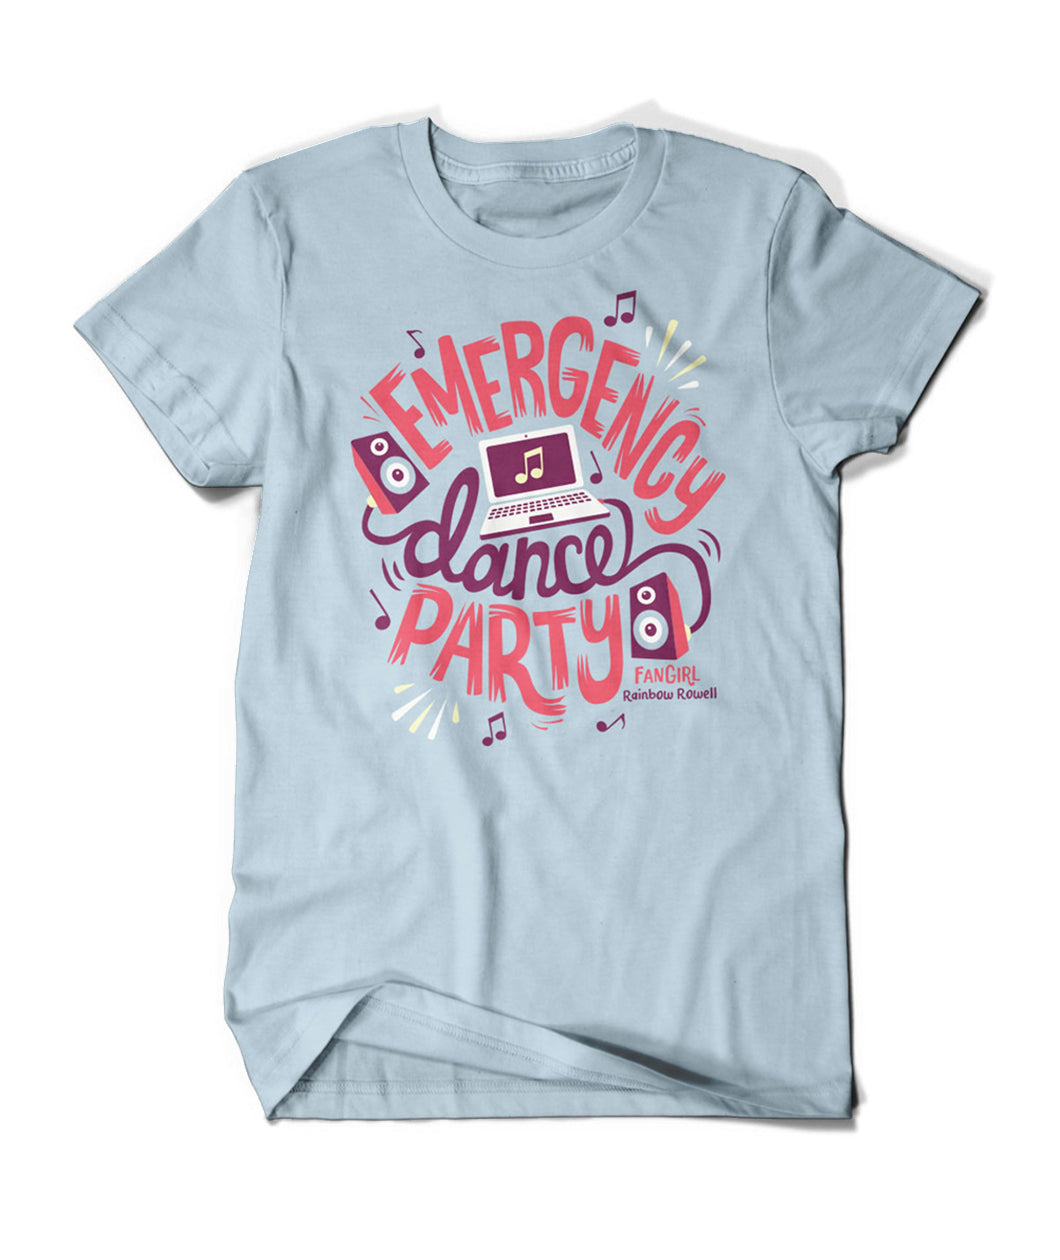 Emergency Dance Party Shirt